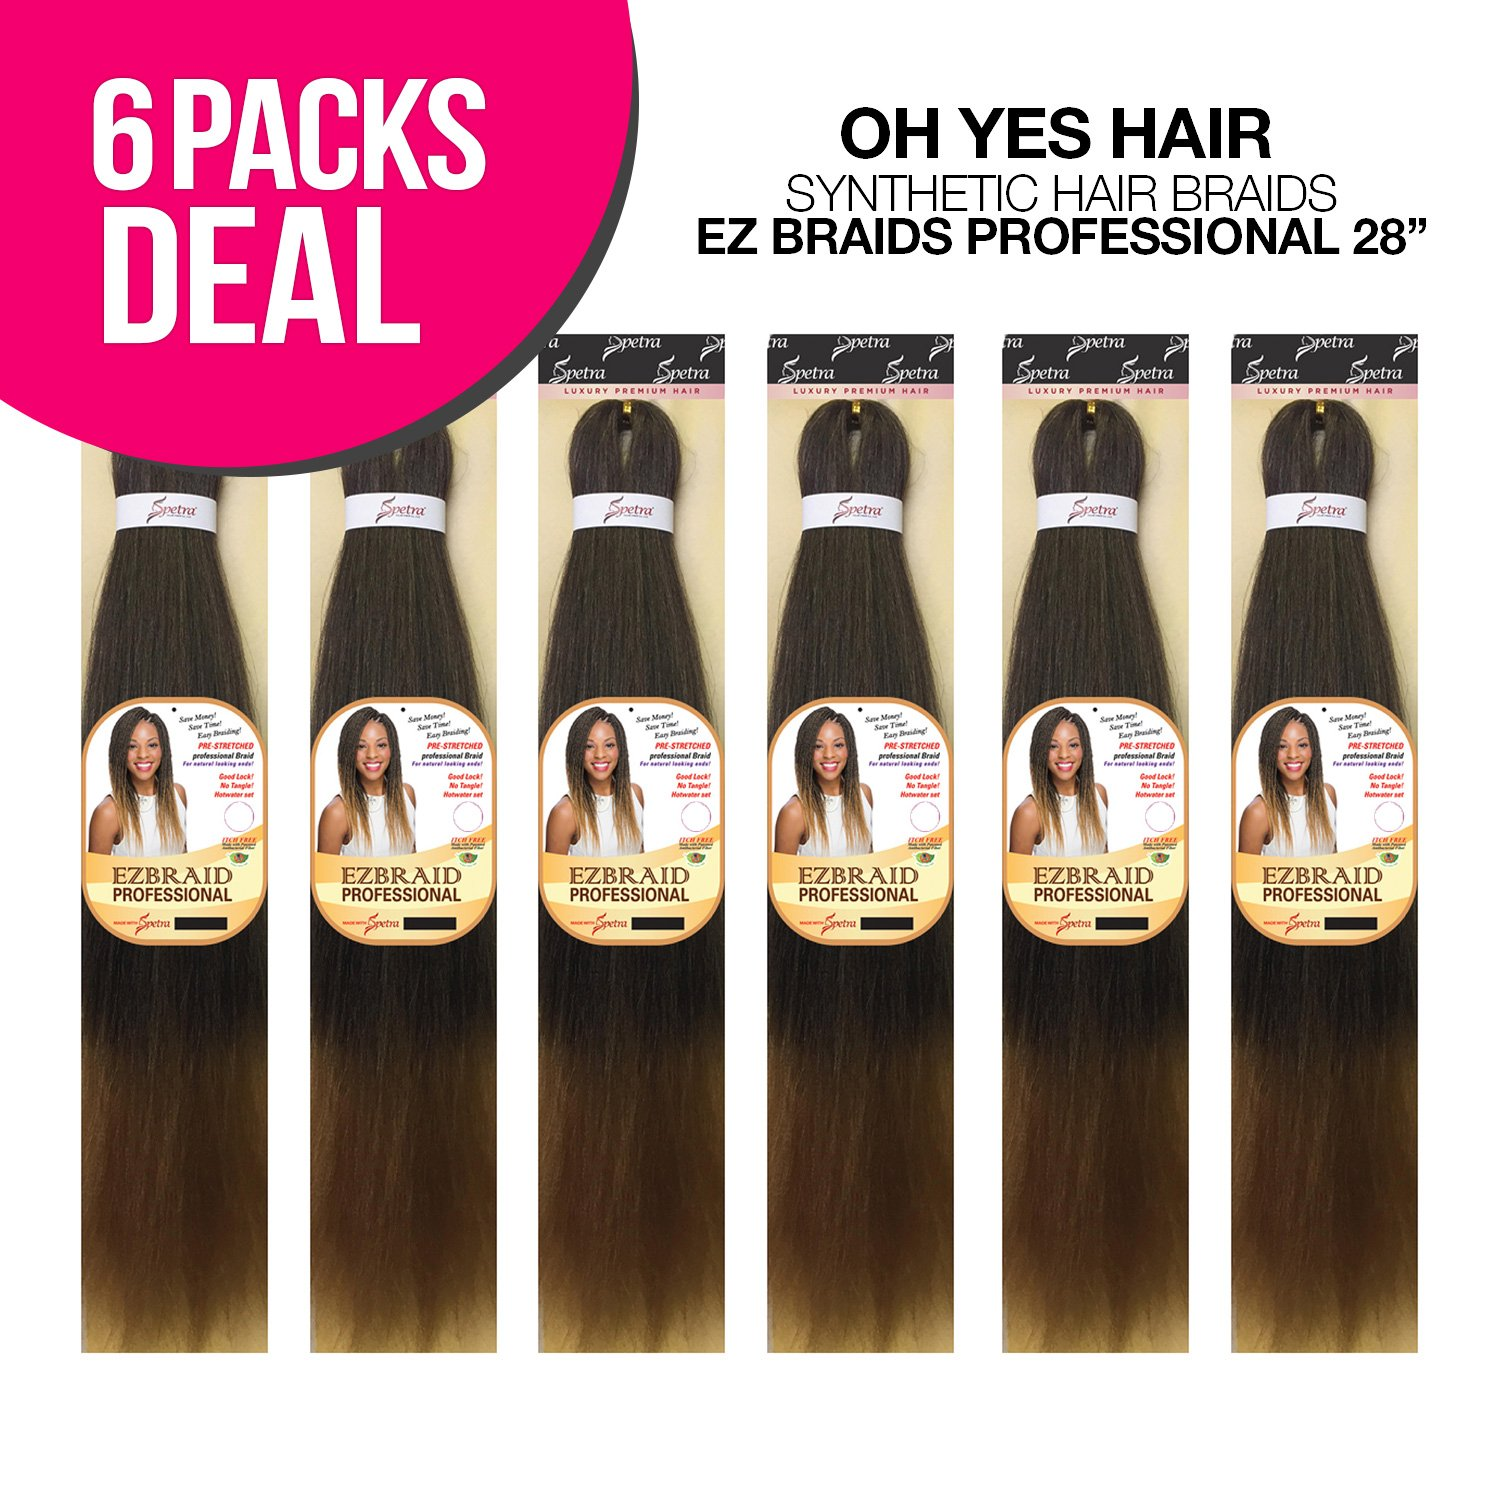 MULTI PACK DEALS! Oh Yes Hair Synthetic Hair Braids Ez Braids Professional 28'' (6-PACK, T1B/30)